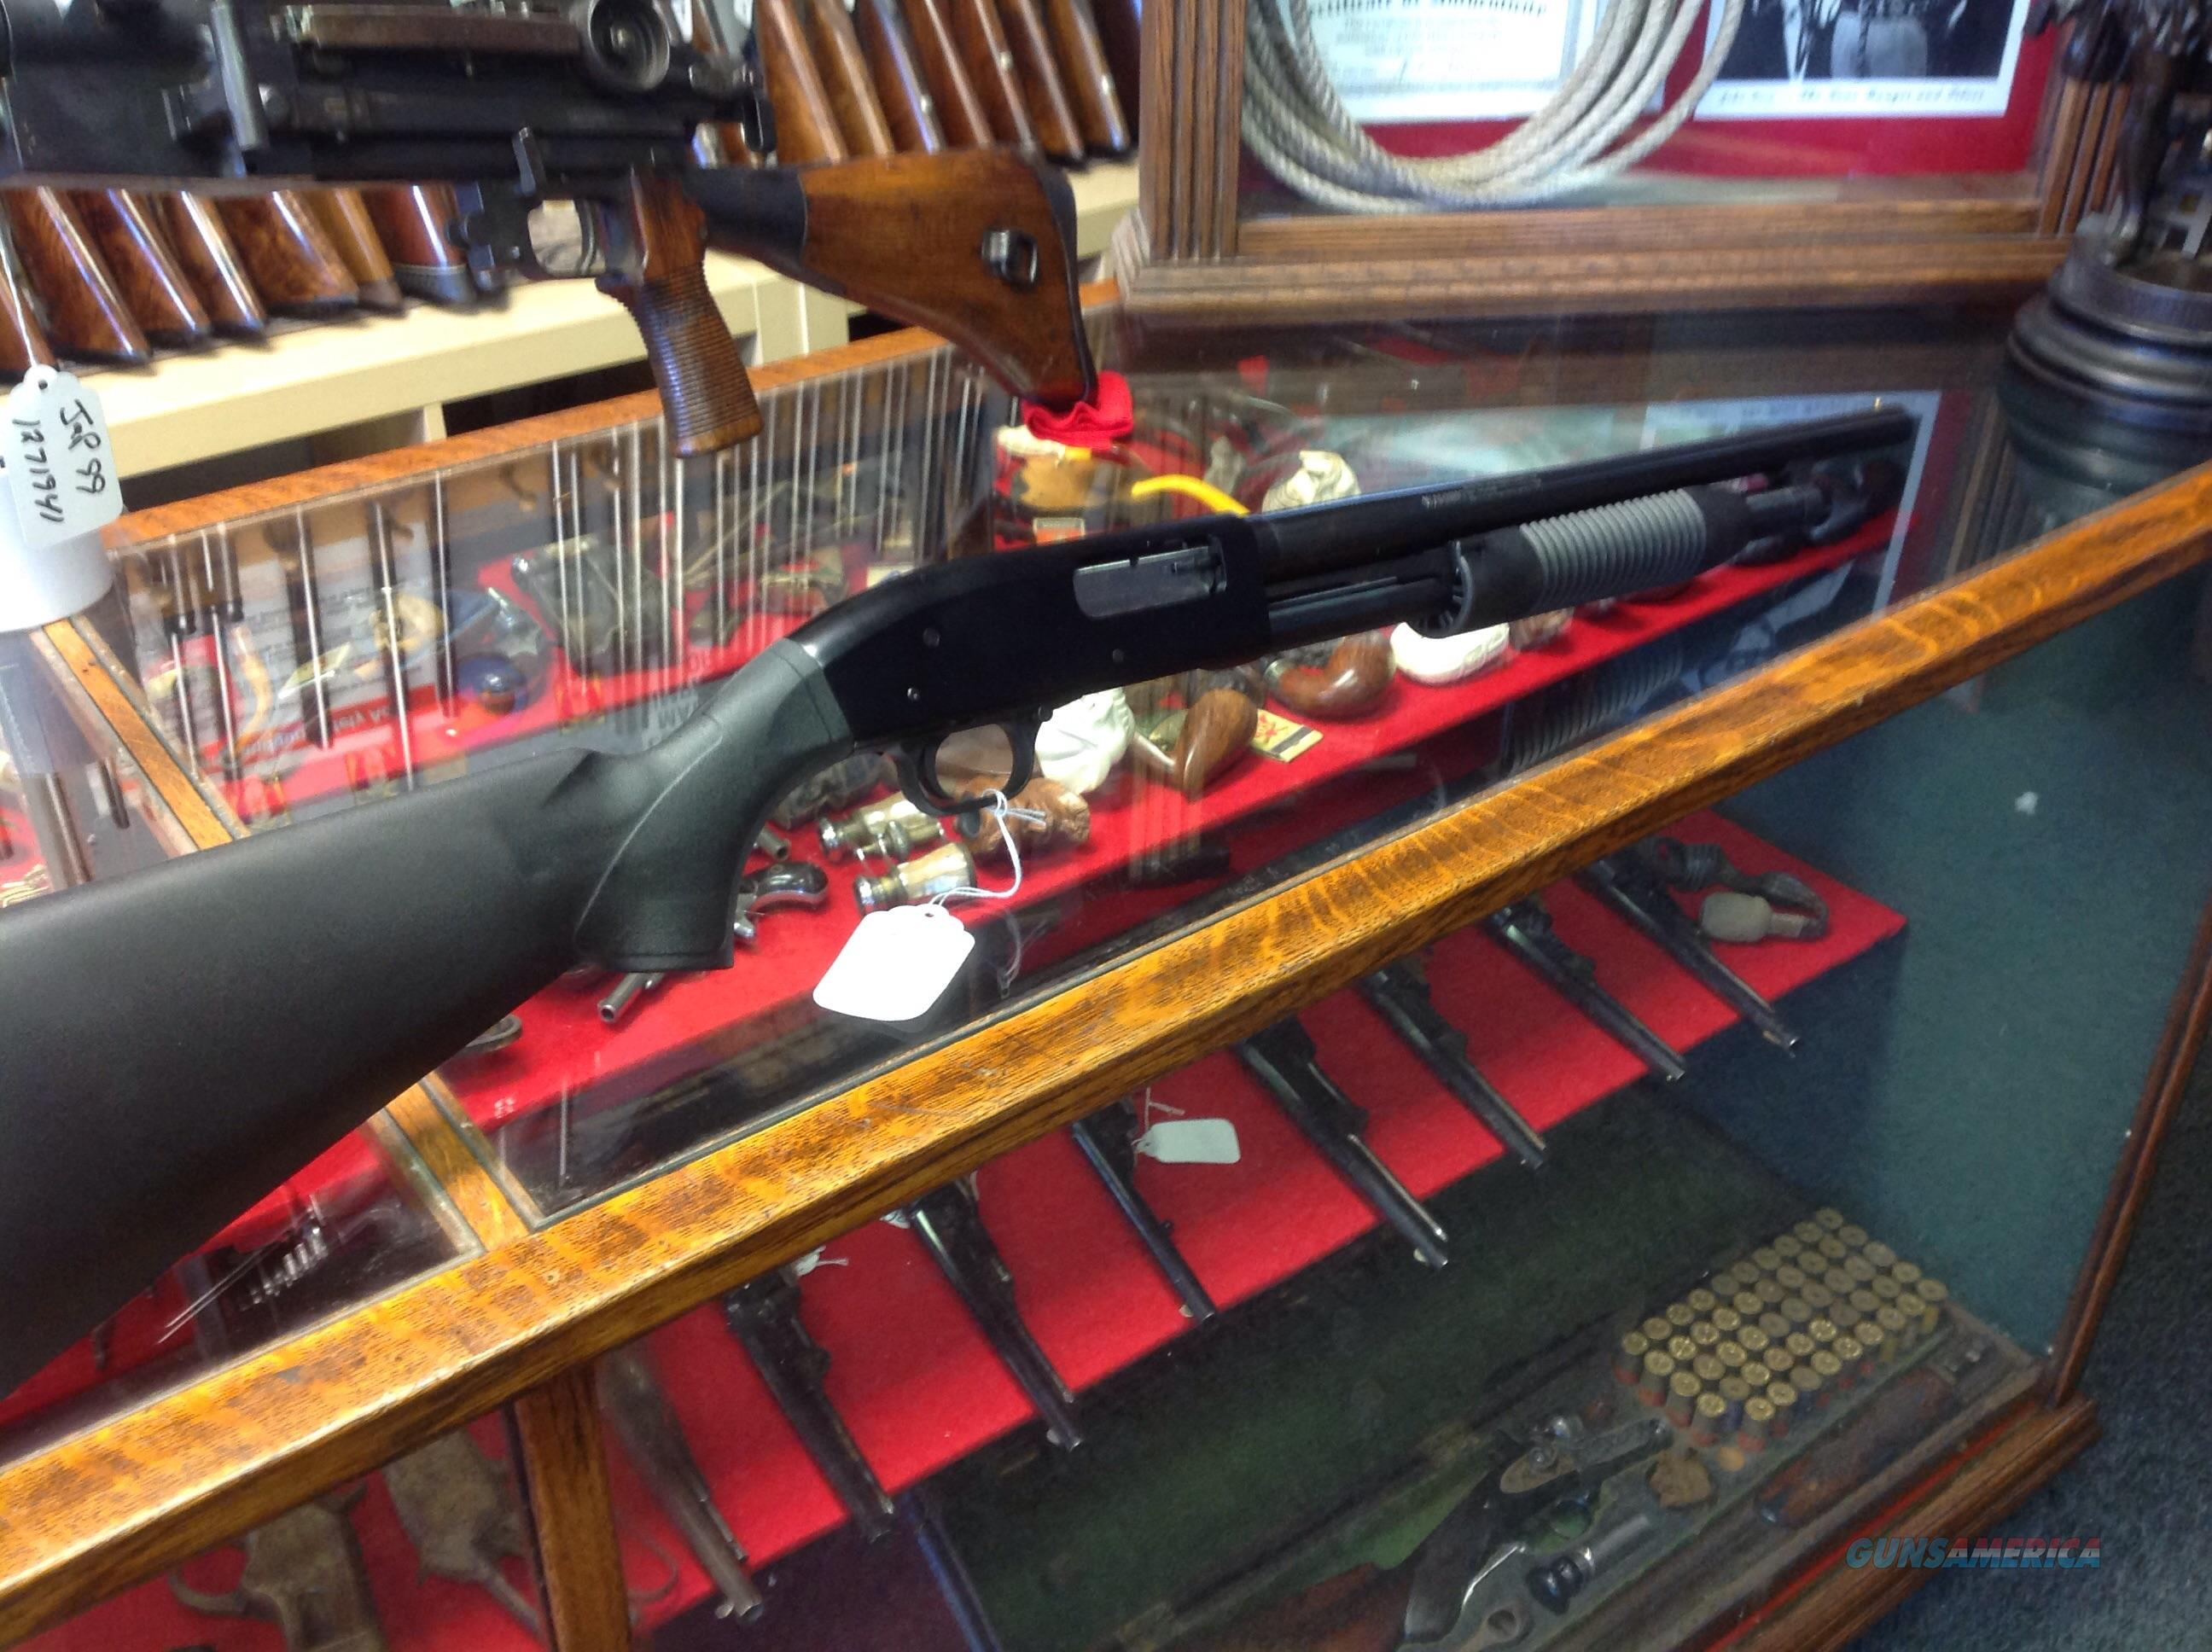 mossberg model 88  like 500  12ga 18 1/2 in brl unfired as new no box   Guns > Shotguns > Mossberg Shotguns > Pump > Tactical